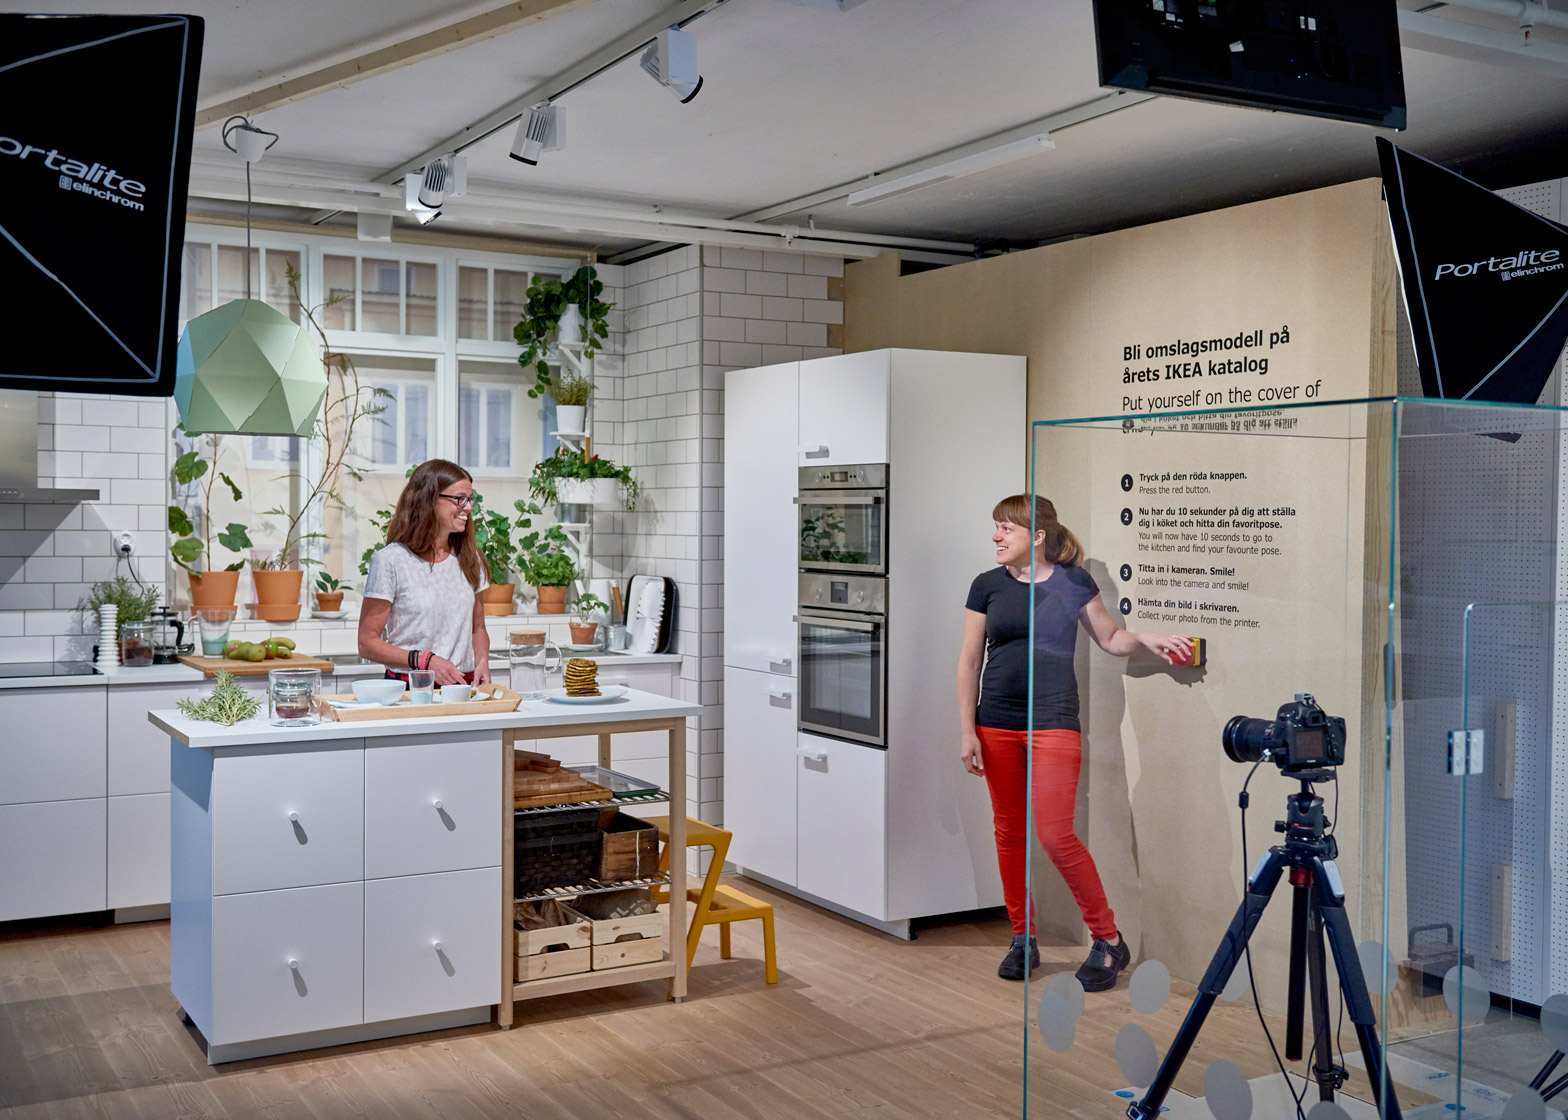 Ikea Museum Will Open in Sweden - Curbed - photo#20